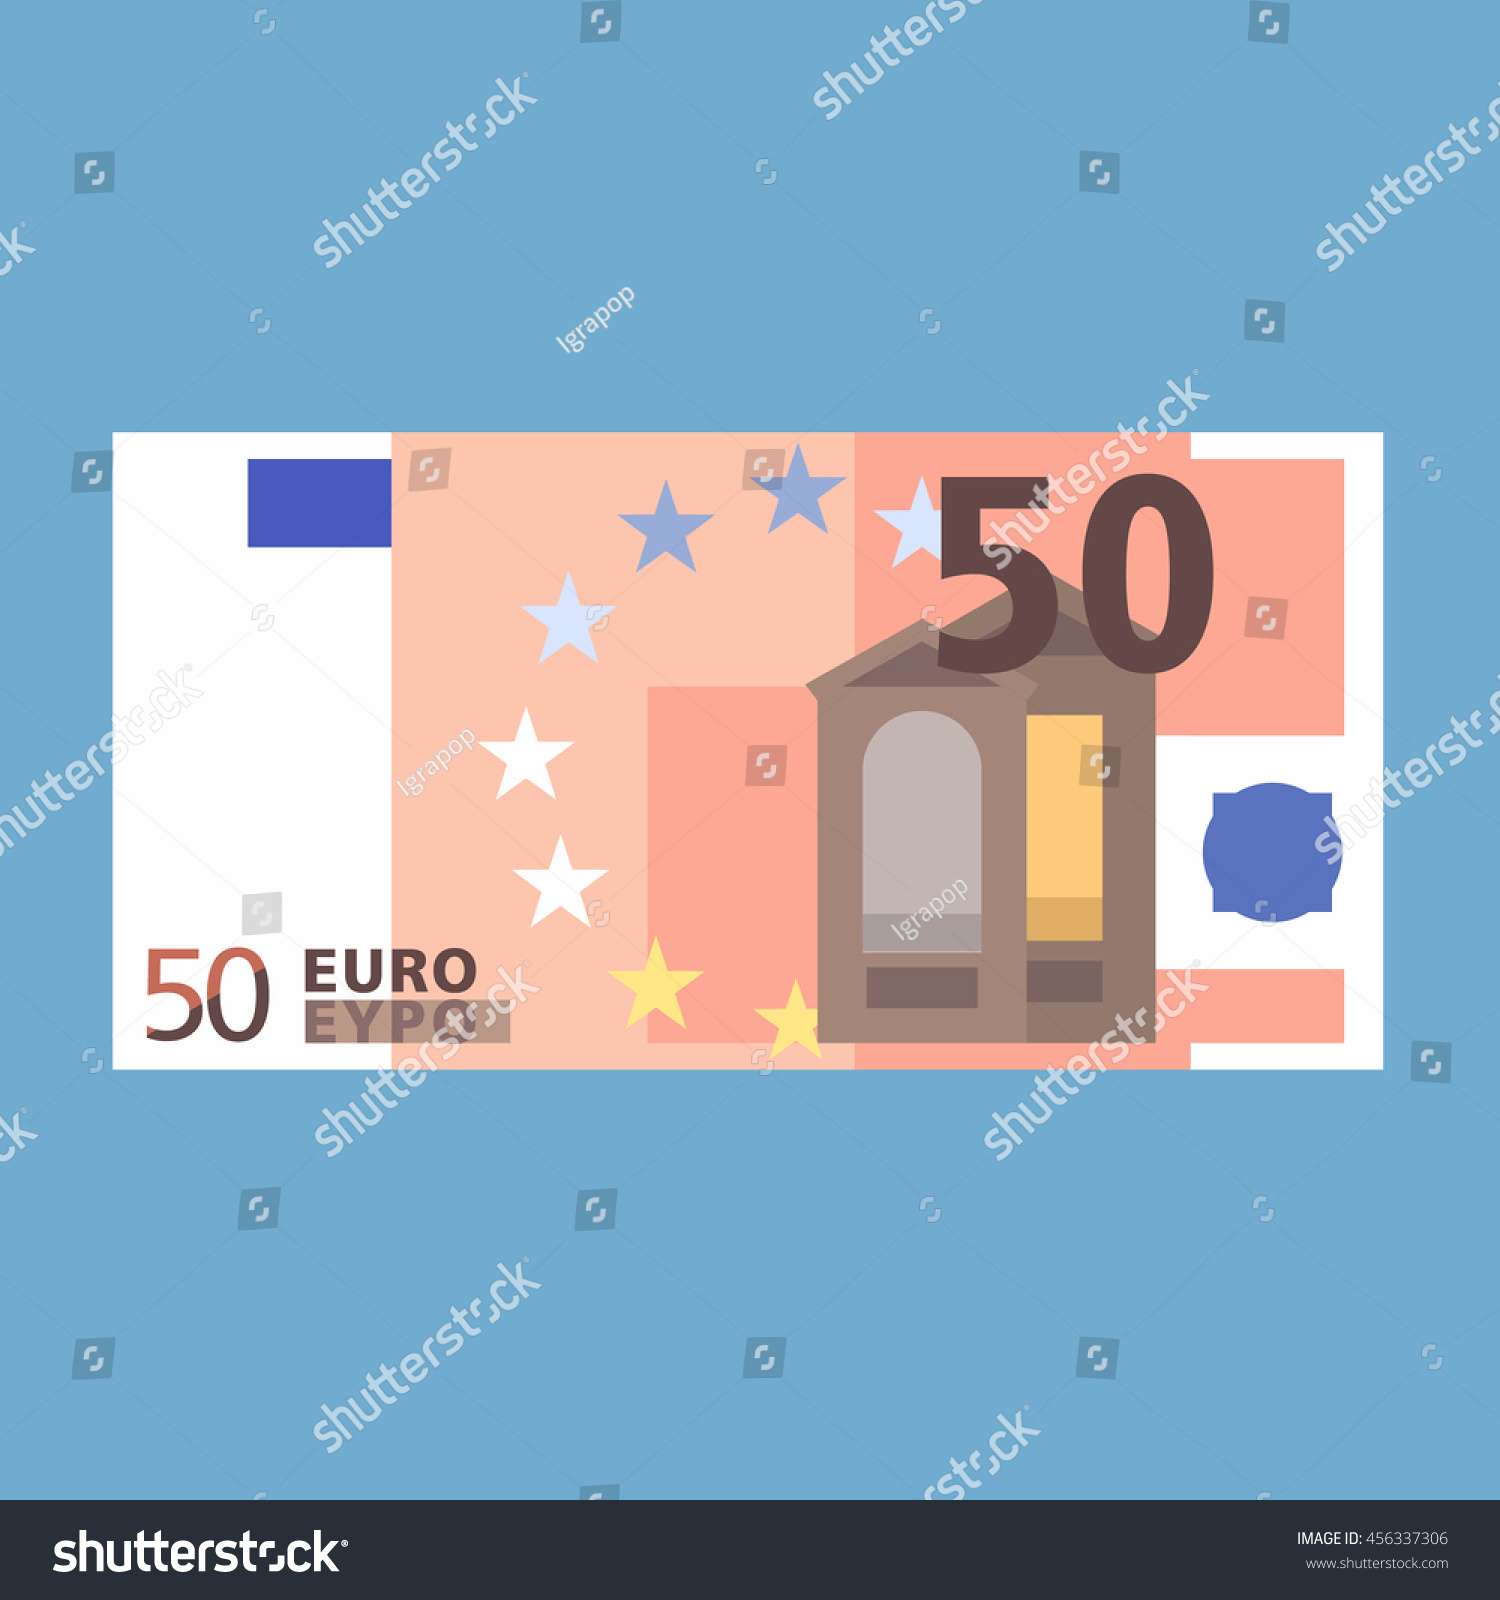 50 Euro Banknote Simple Flat Style Stock Vector Royalty Free